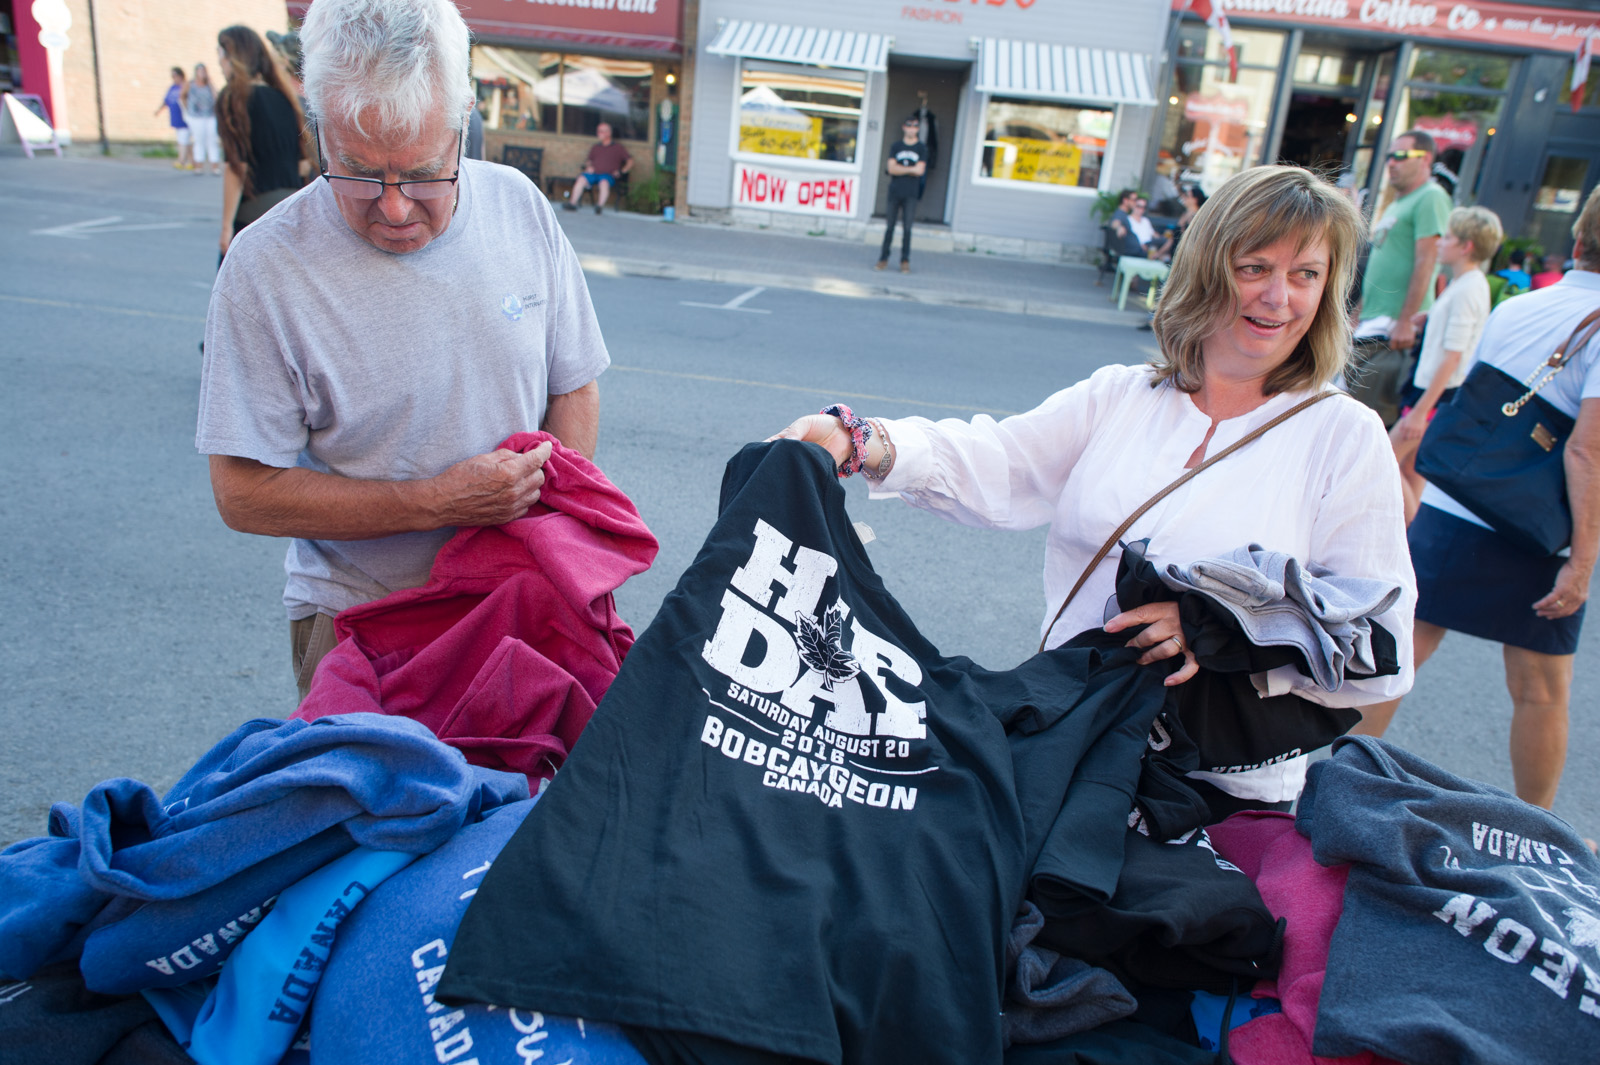 MACLEANS-BOBCAYGEON-08.20.16-Tragically Hip shirts are sold on Bolton street in downtown Bobcaygeon in anticipation for the live screening of the bands final concert.